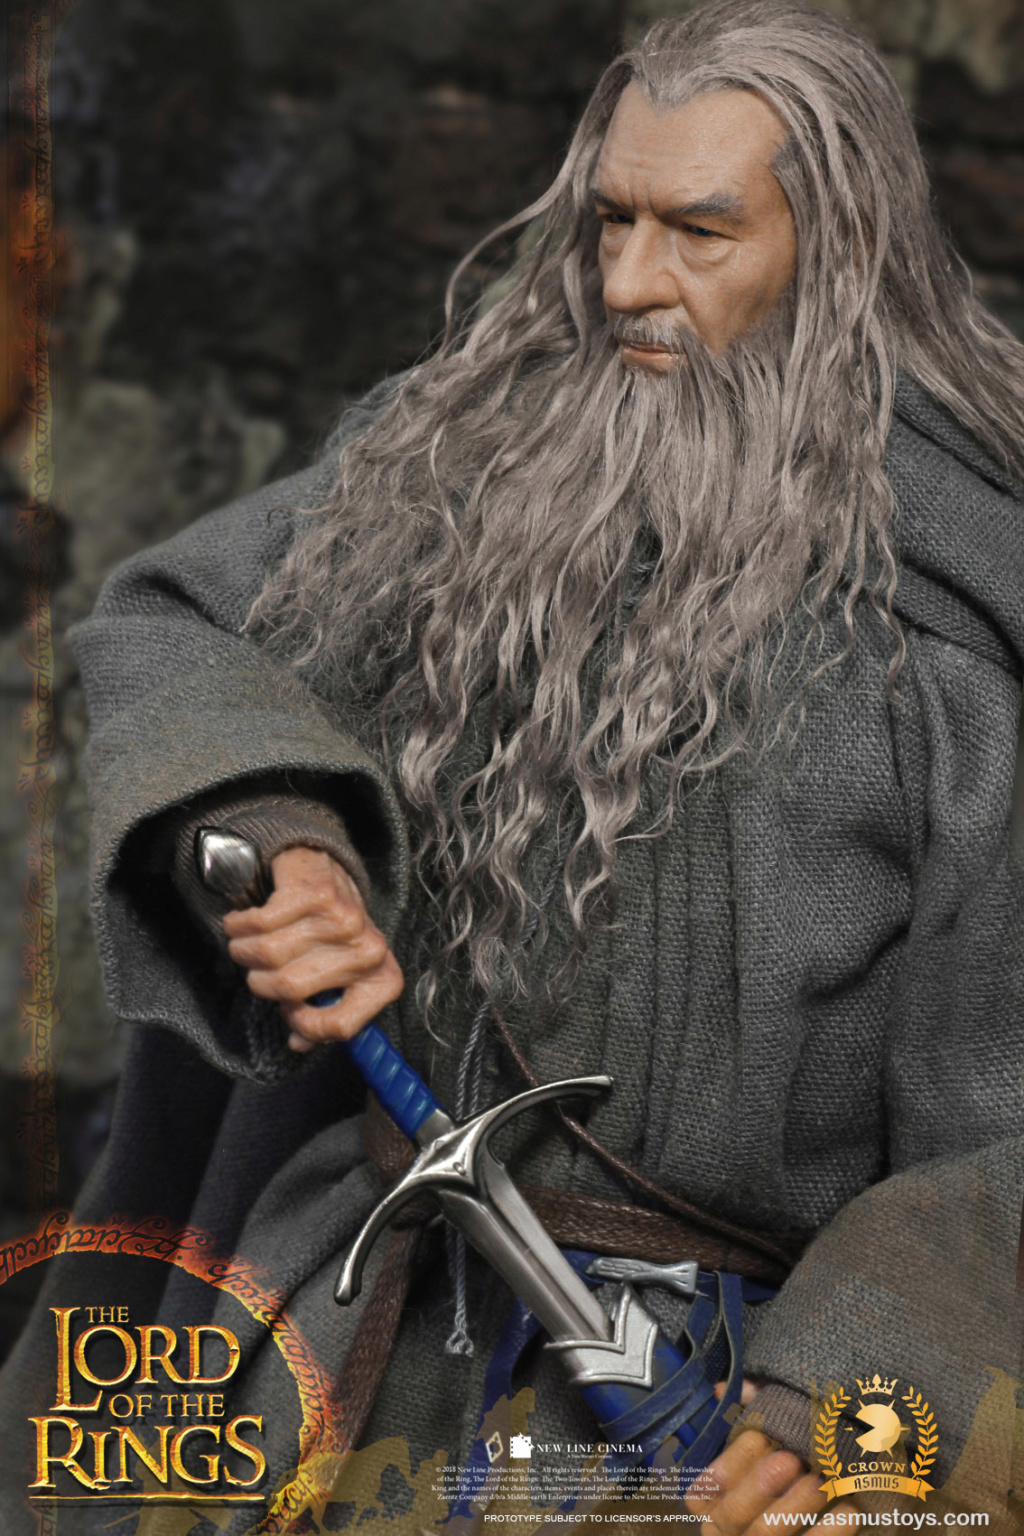 NEW PRODUCT: ASMUS TOYS THE CROWN SERIES : GANDALF THE GREY 1/6 figure 1897